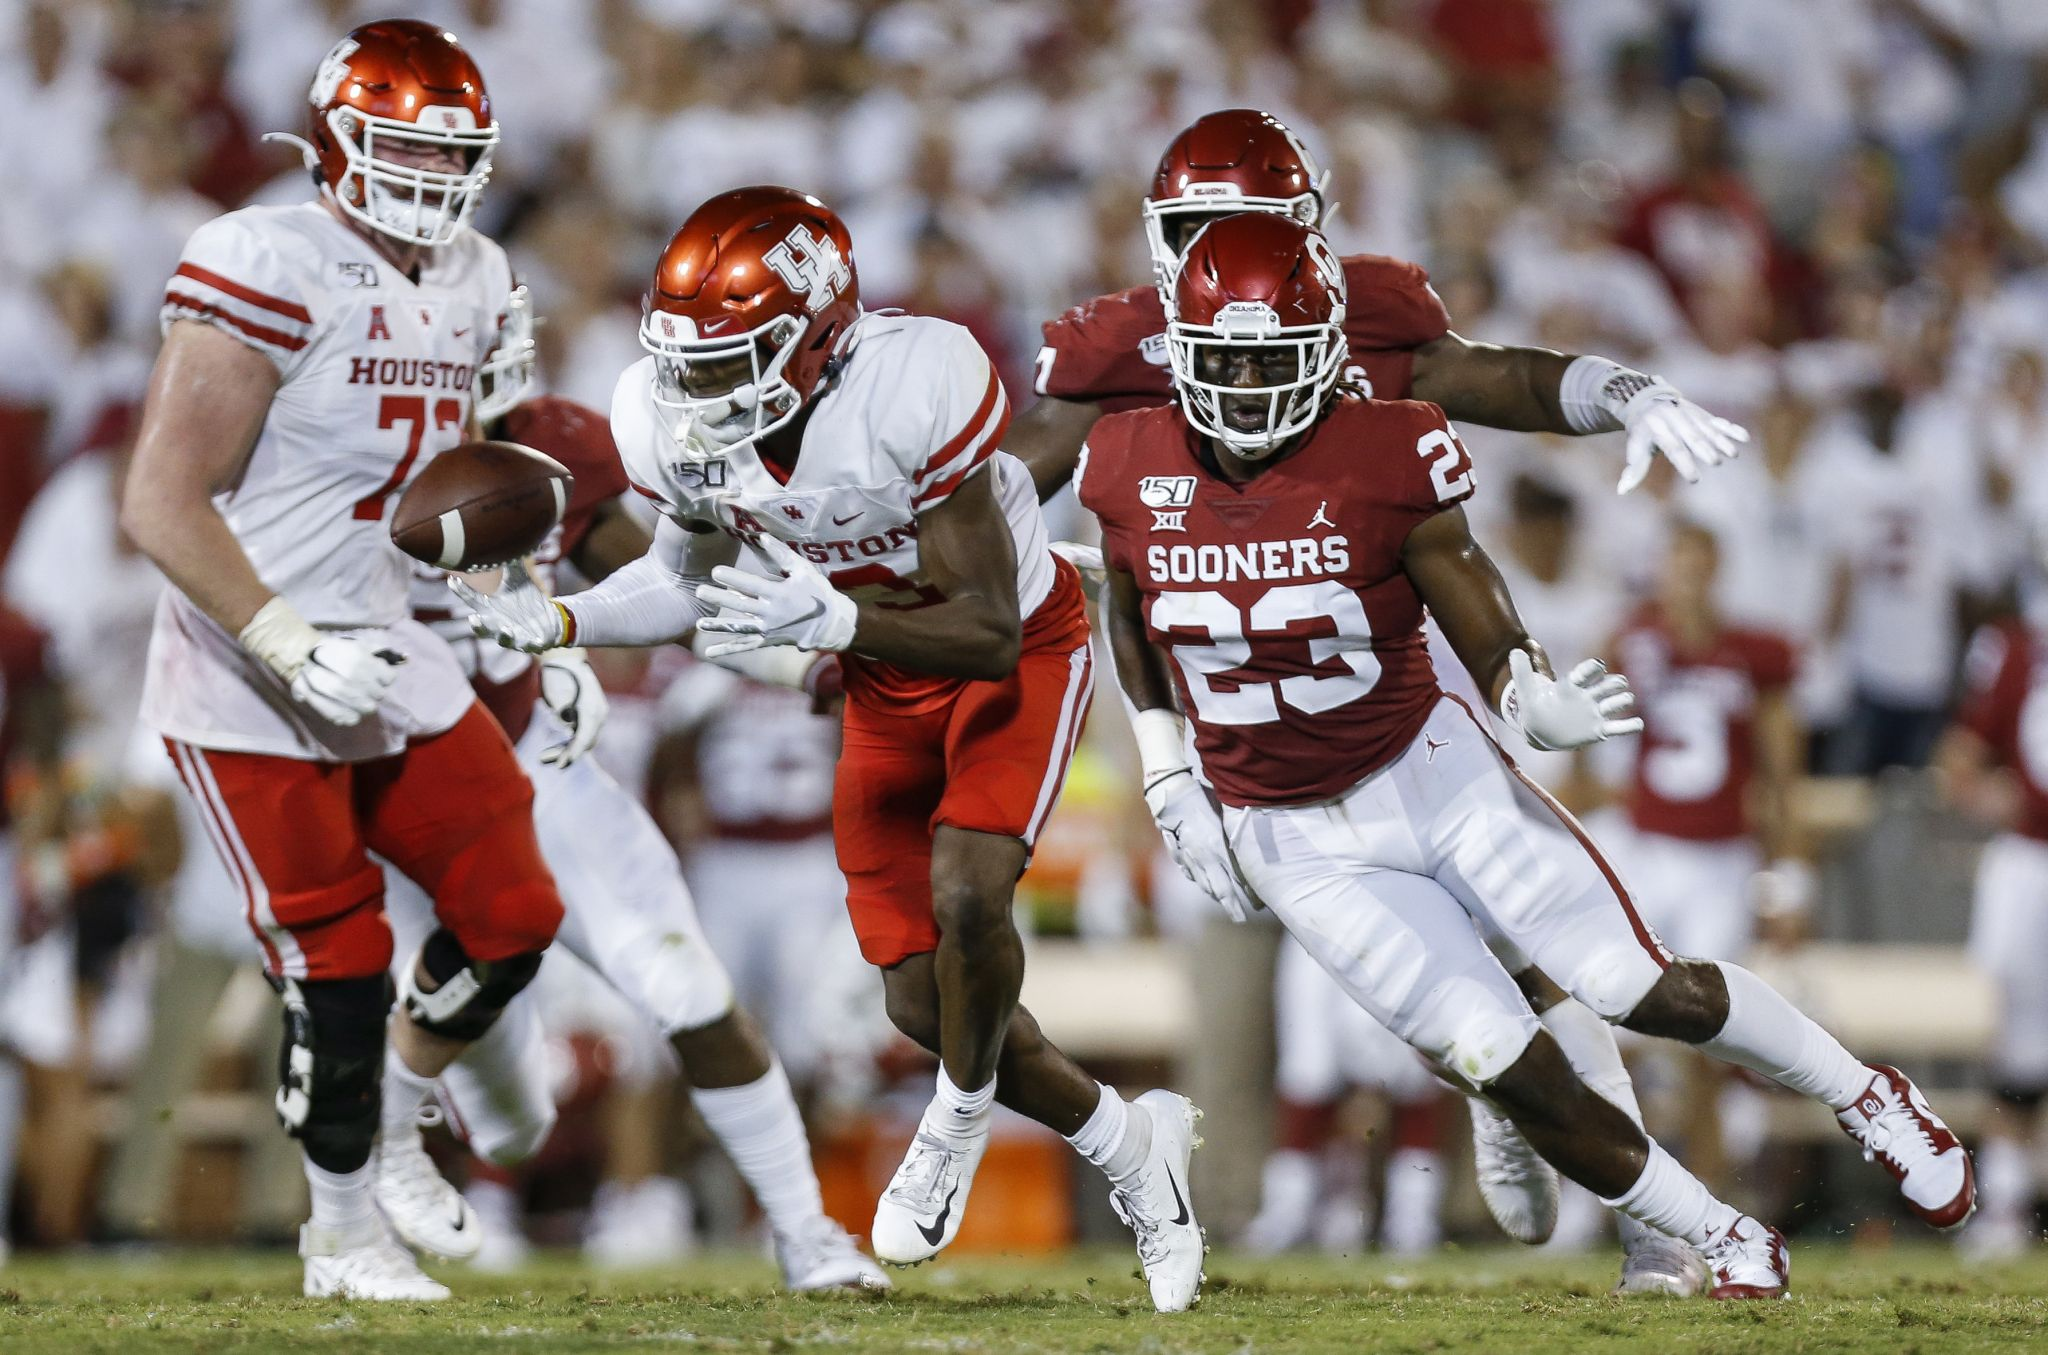 UH football may face record number of ranked opponents